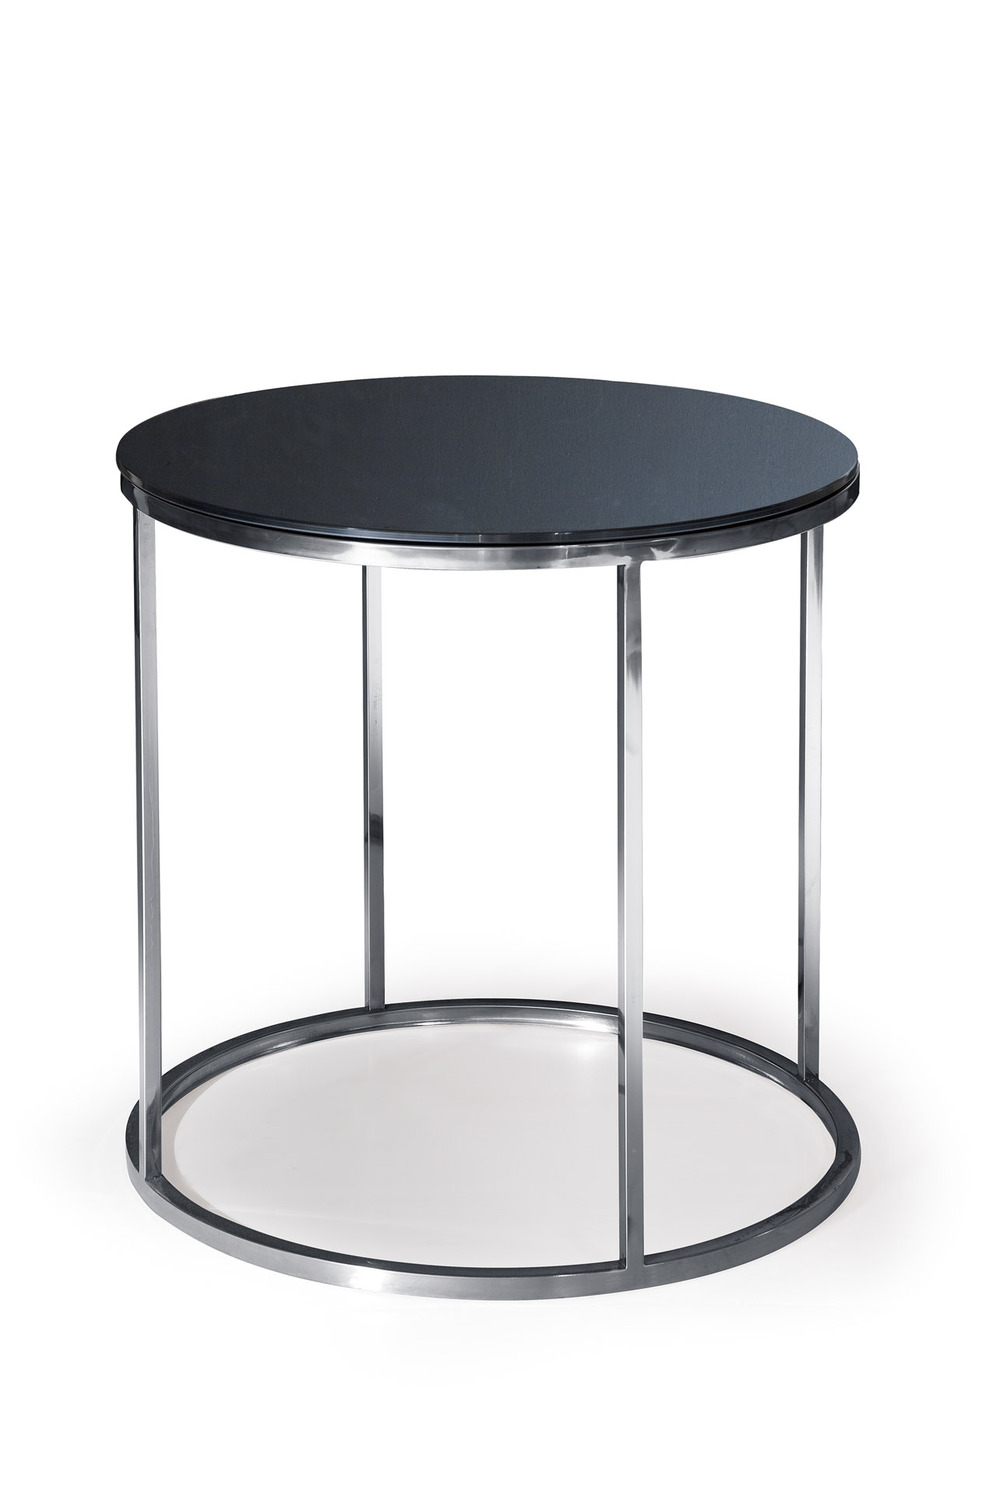 Glass Coffee Table Round Table Glass Corner Table Buy High